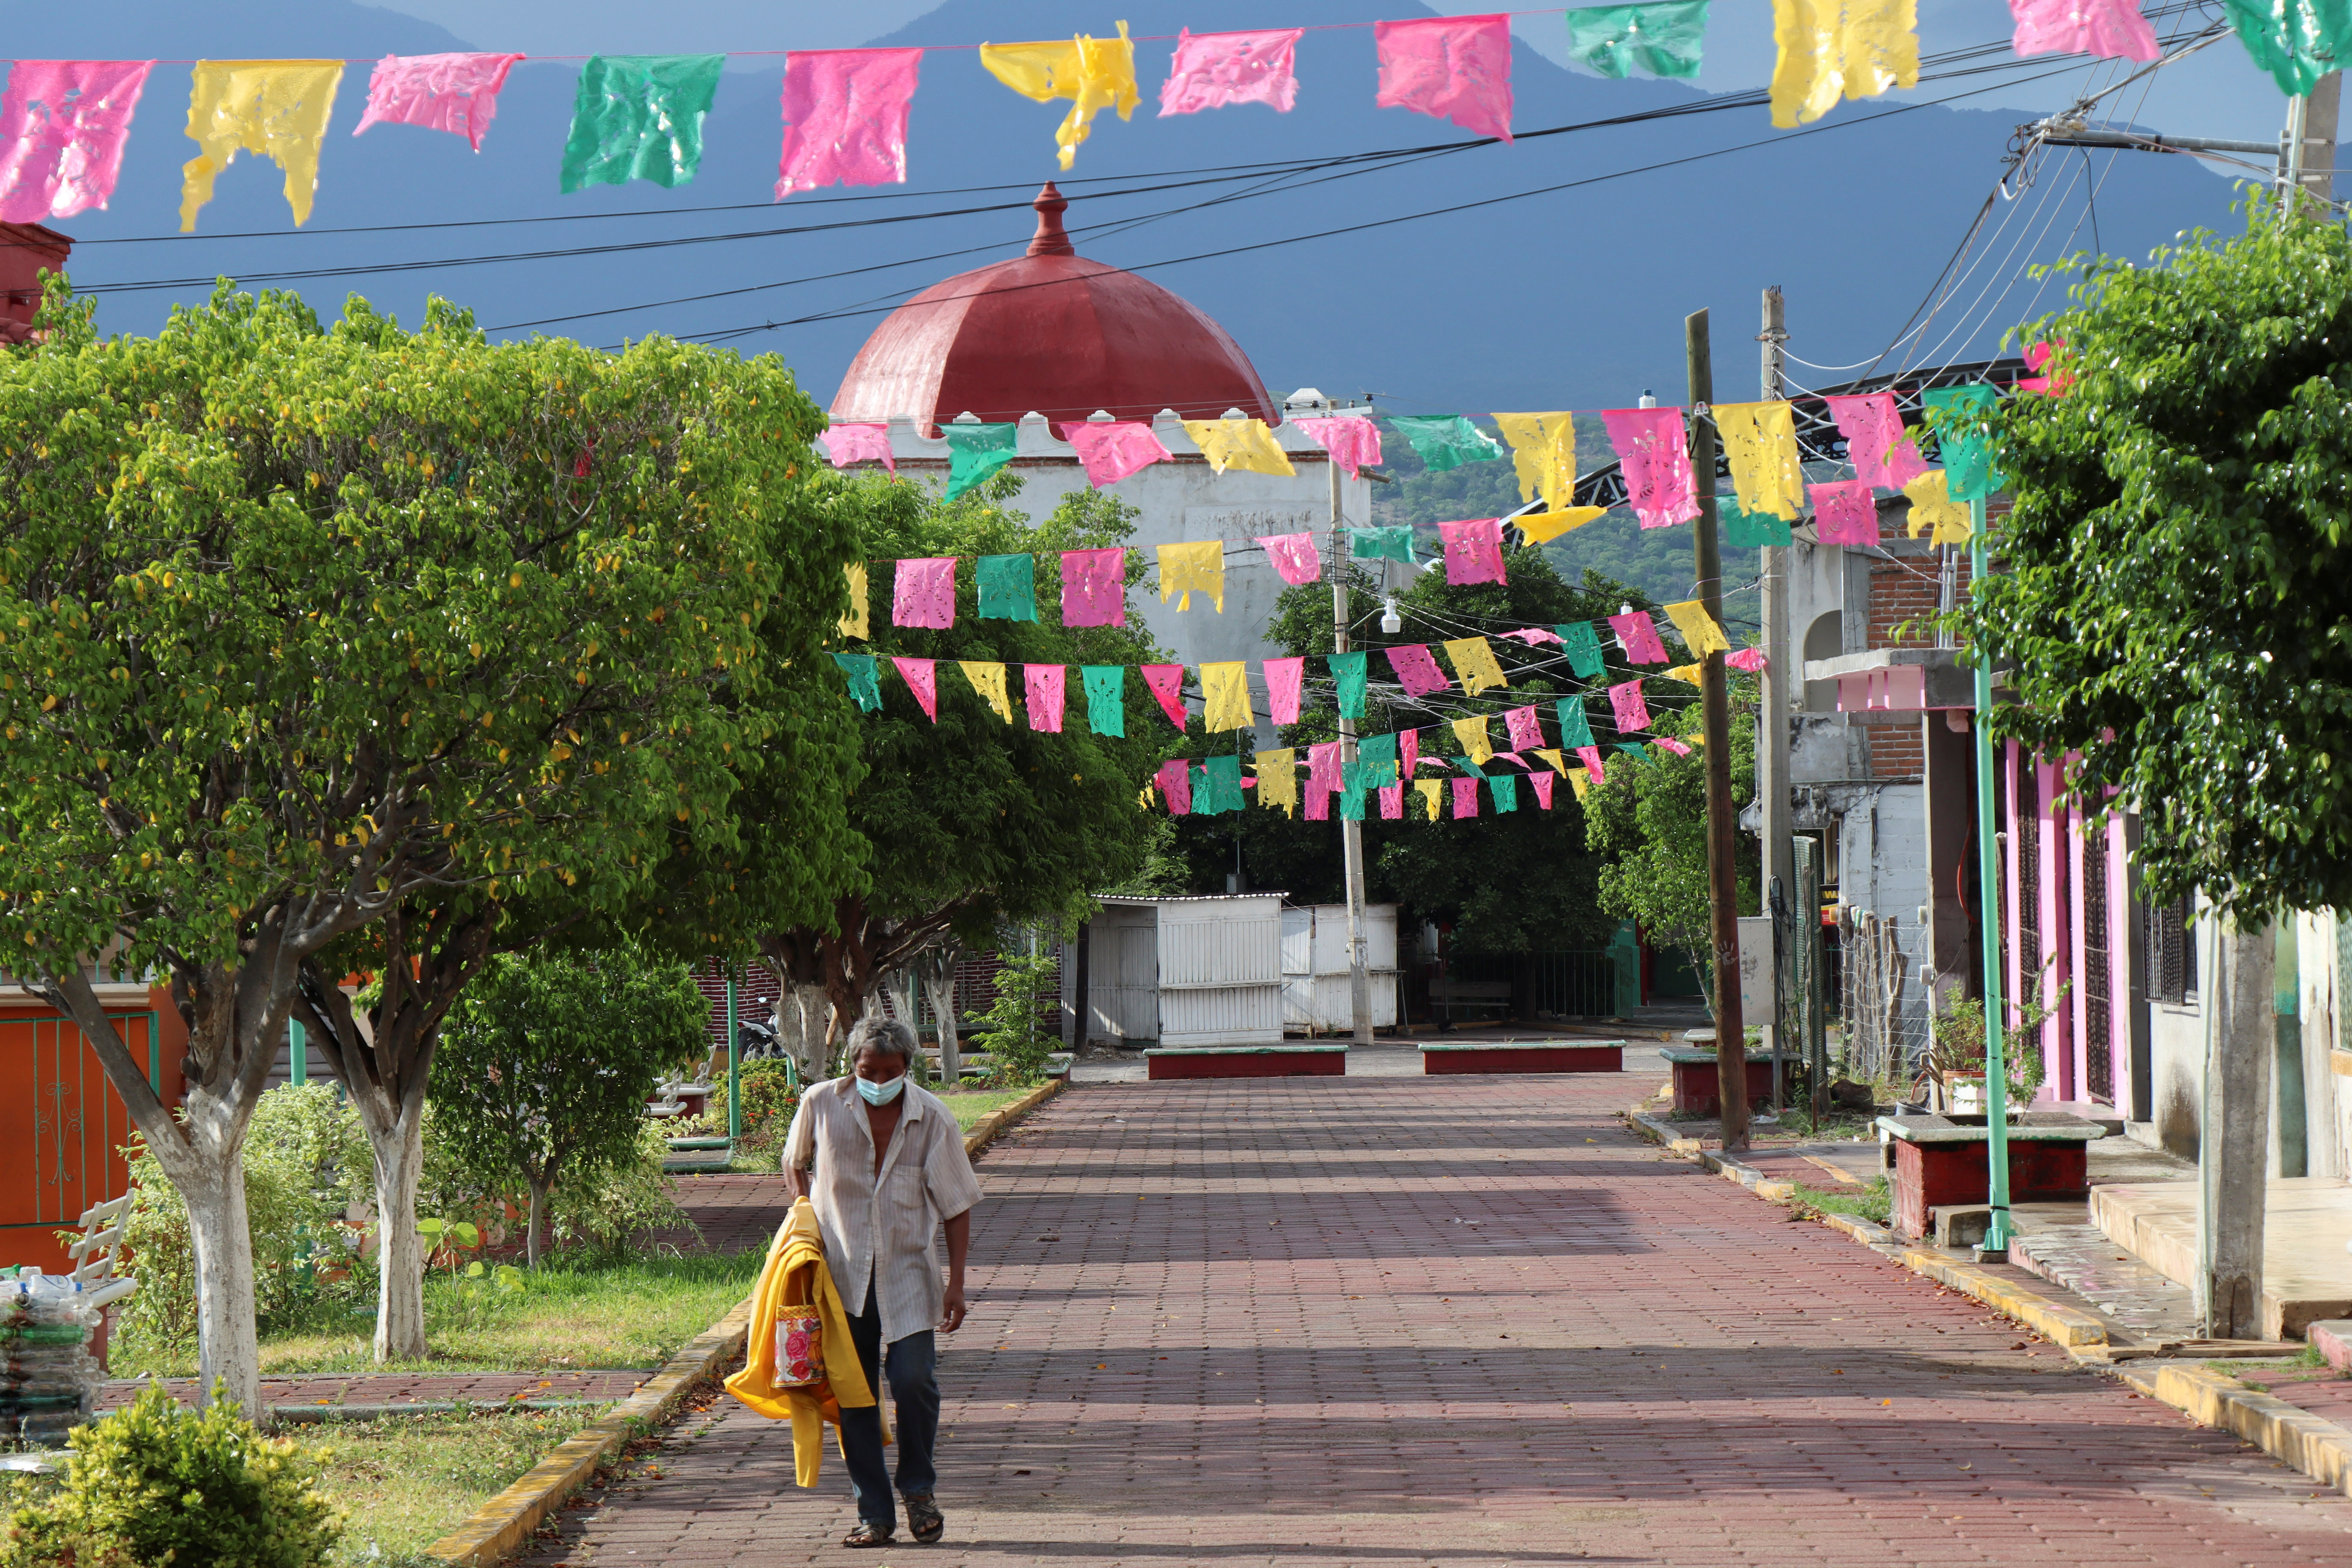 A man walks an empty street after authorities asked residents to stay at their homes, as the coronavirus disease (COVID-19) outbreak continues in the town of Magdalena Tequisistlan, in Oaxaca state, Mexico August 4, 2021. REUTERS/Jorge Luis Plata